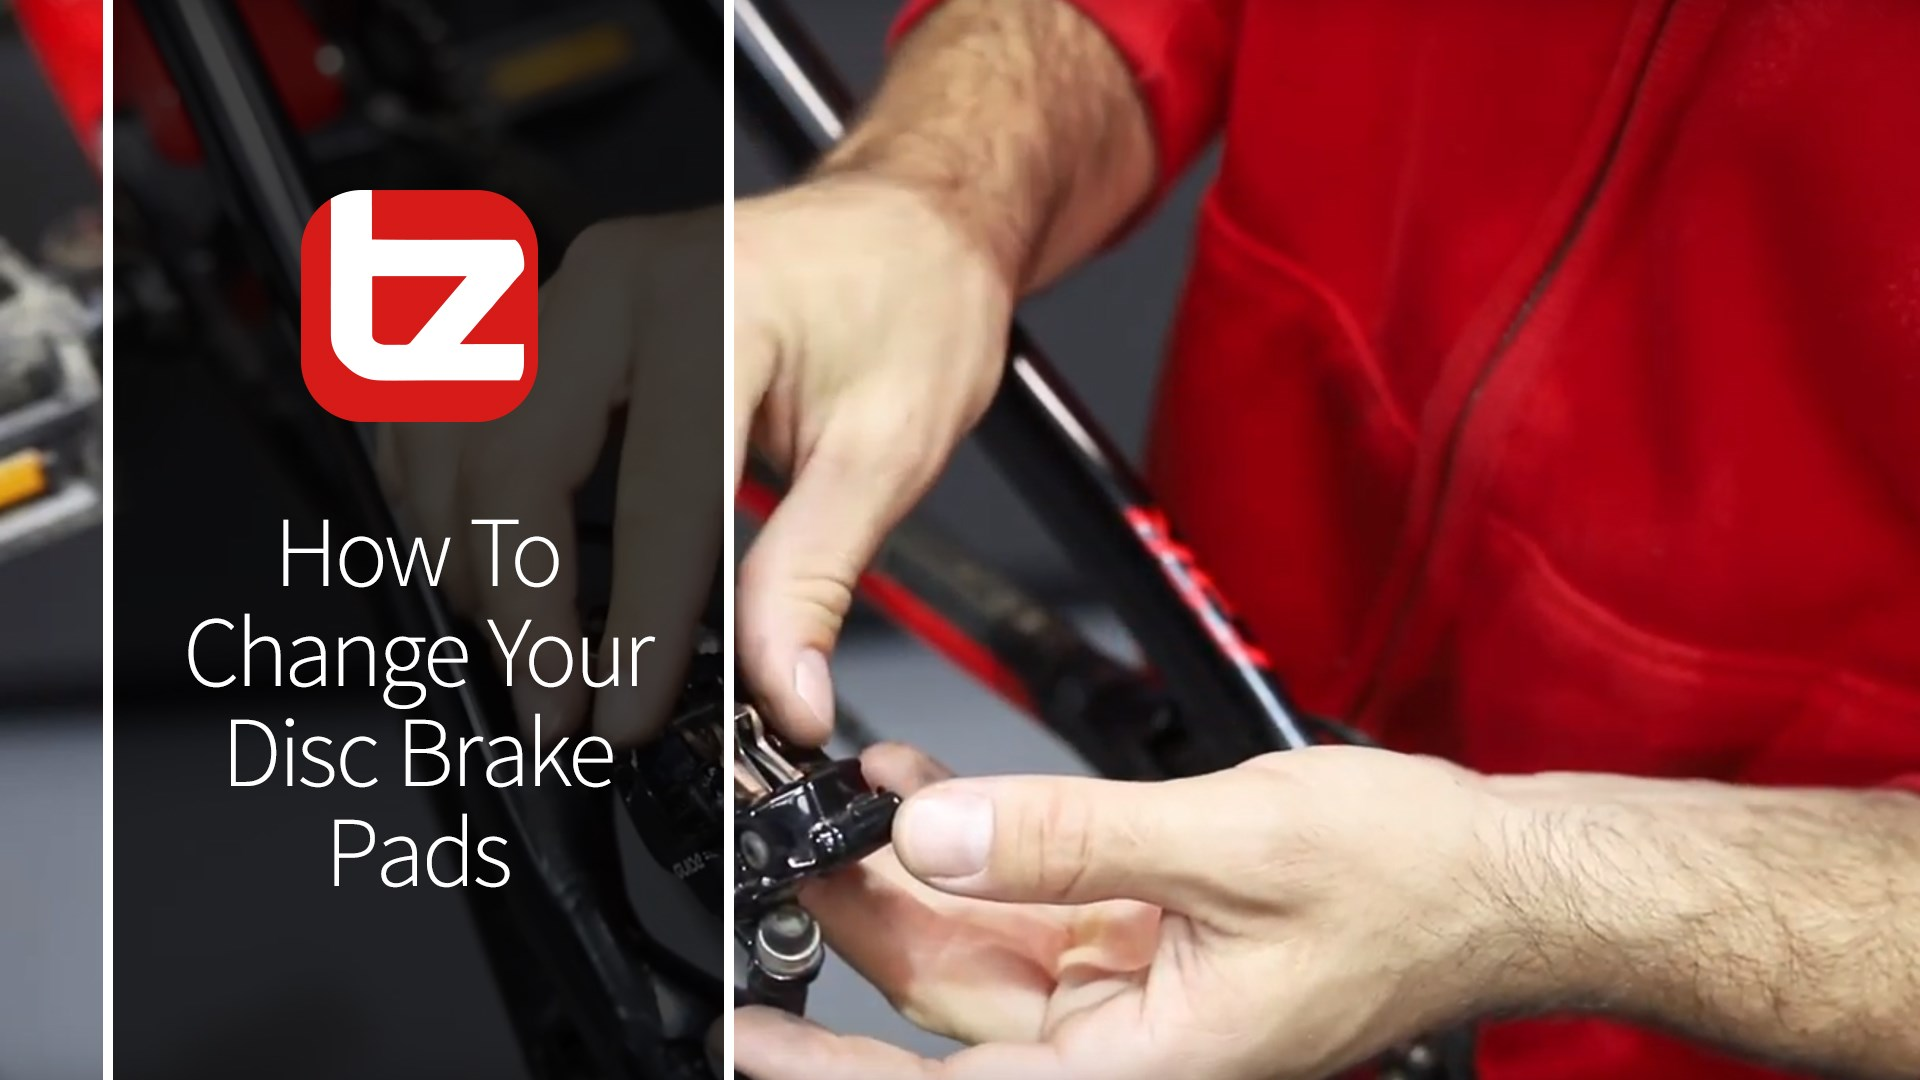 How to Change Disc Brake Pads